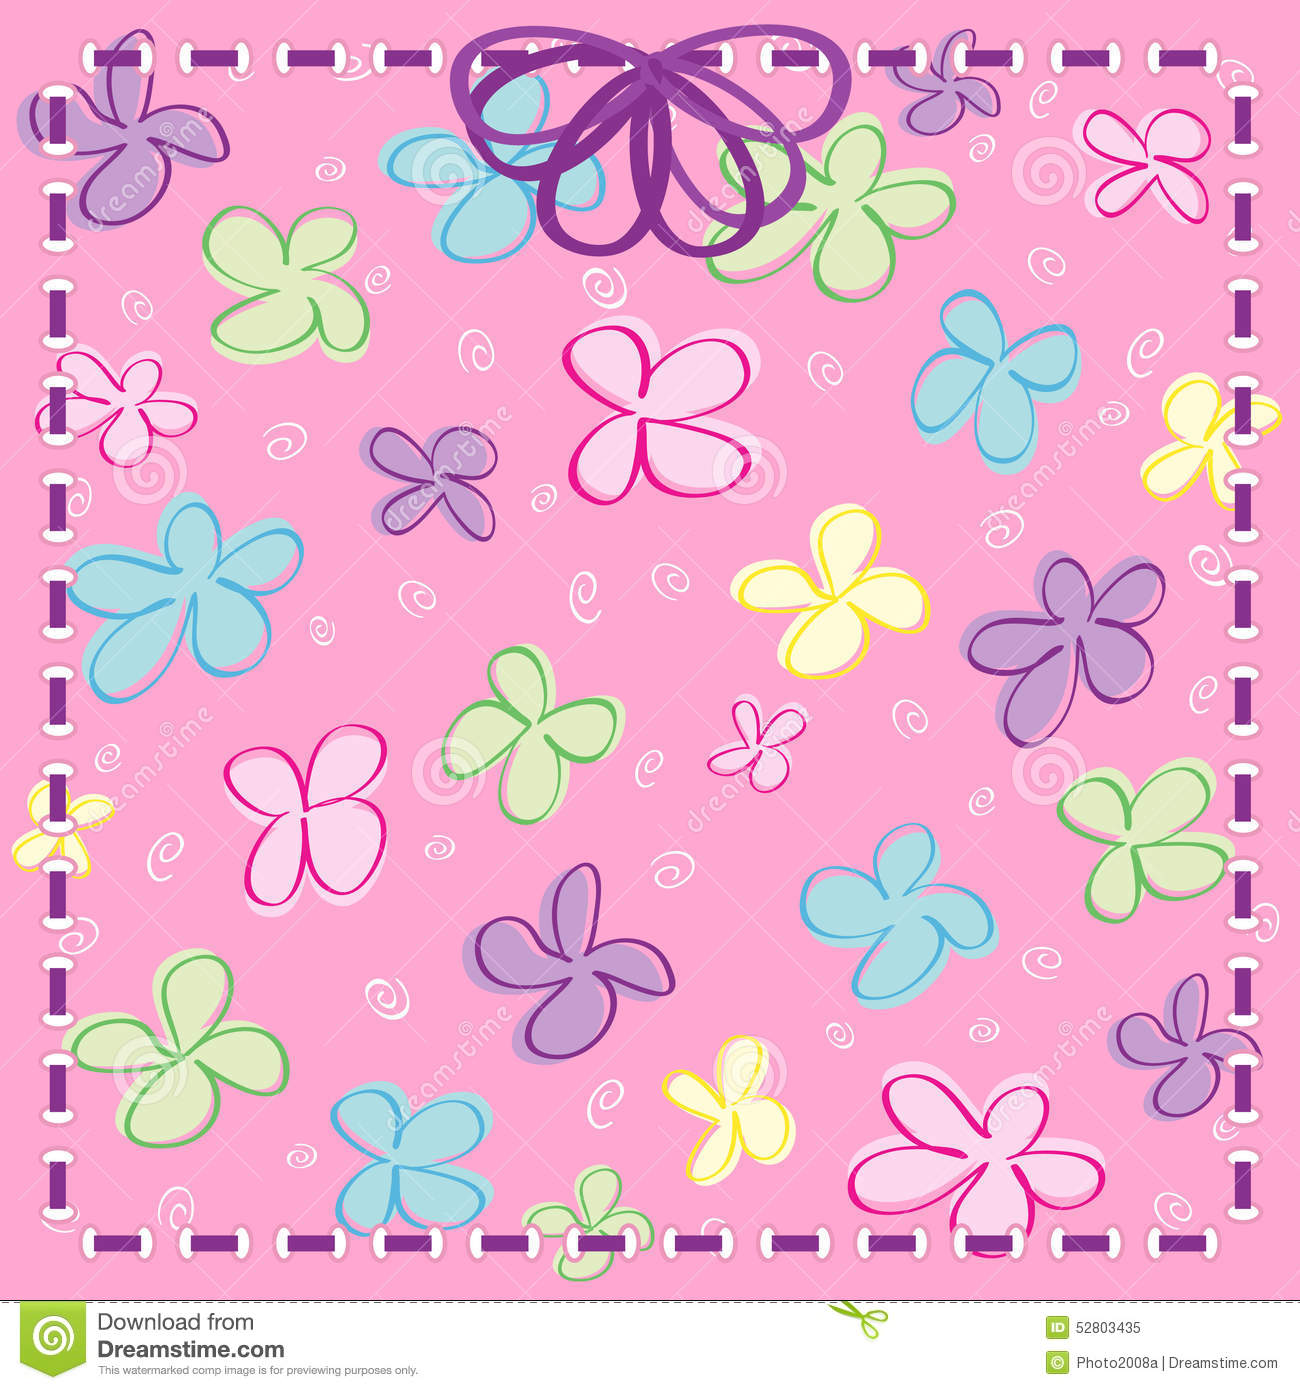 Girly Flowers with Ribbon & Bow